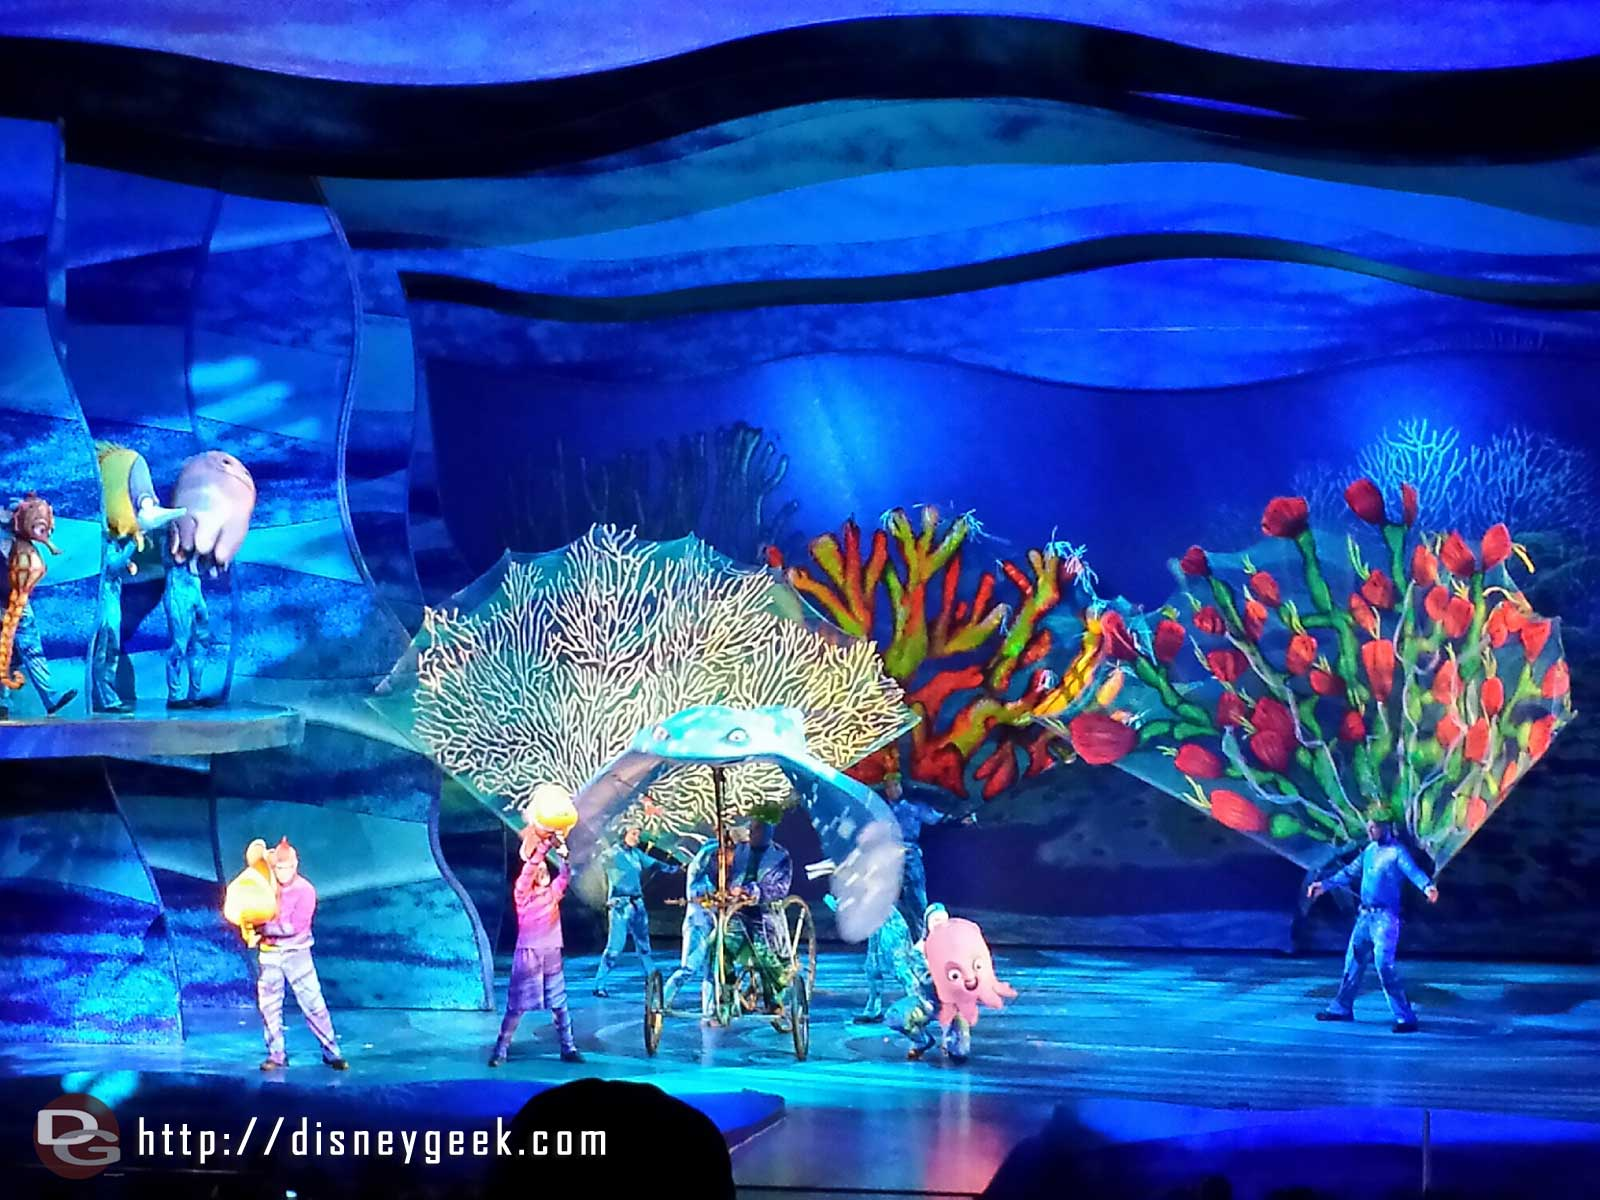 Finding Nemo the Musical at Disney's Animal Kingdom